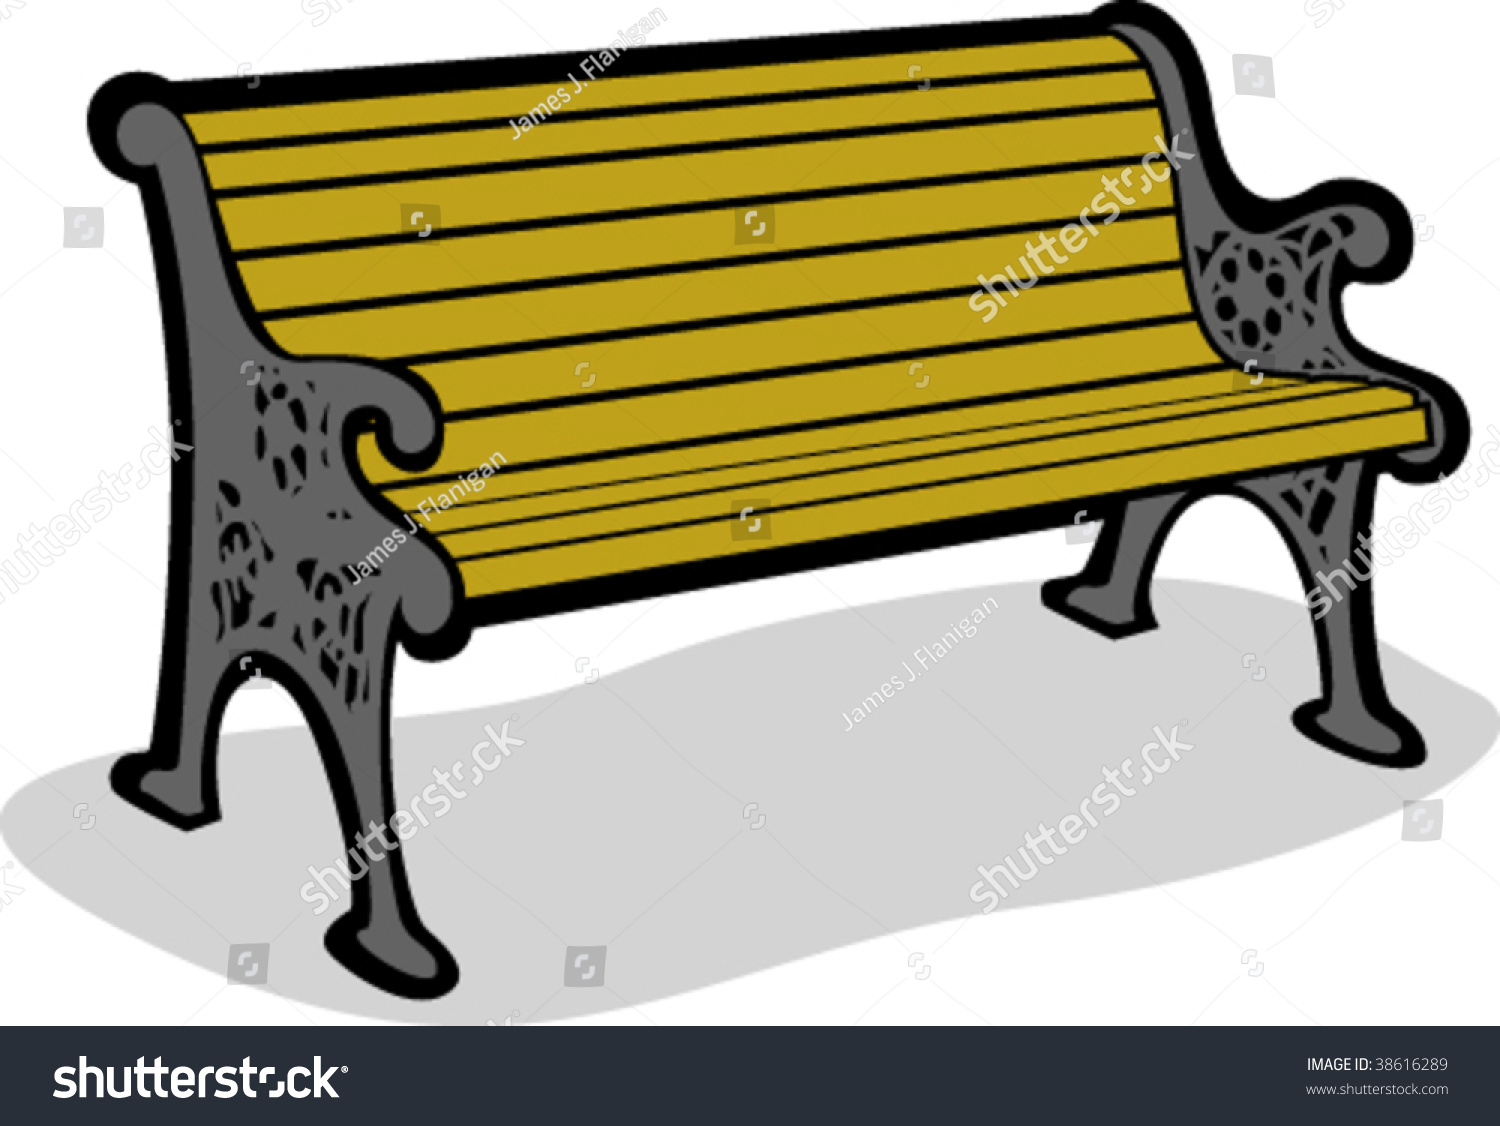 Vector Illustration Park Bench Stock Vector Royalty Free 38616289